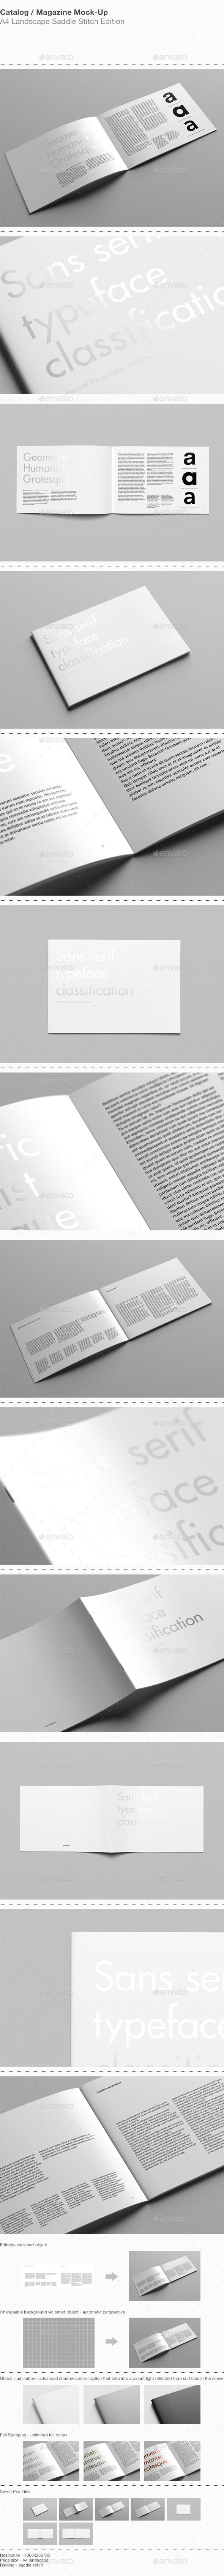 A4 Landscape Catalog / Magazine Mock-Up - Magazines Print